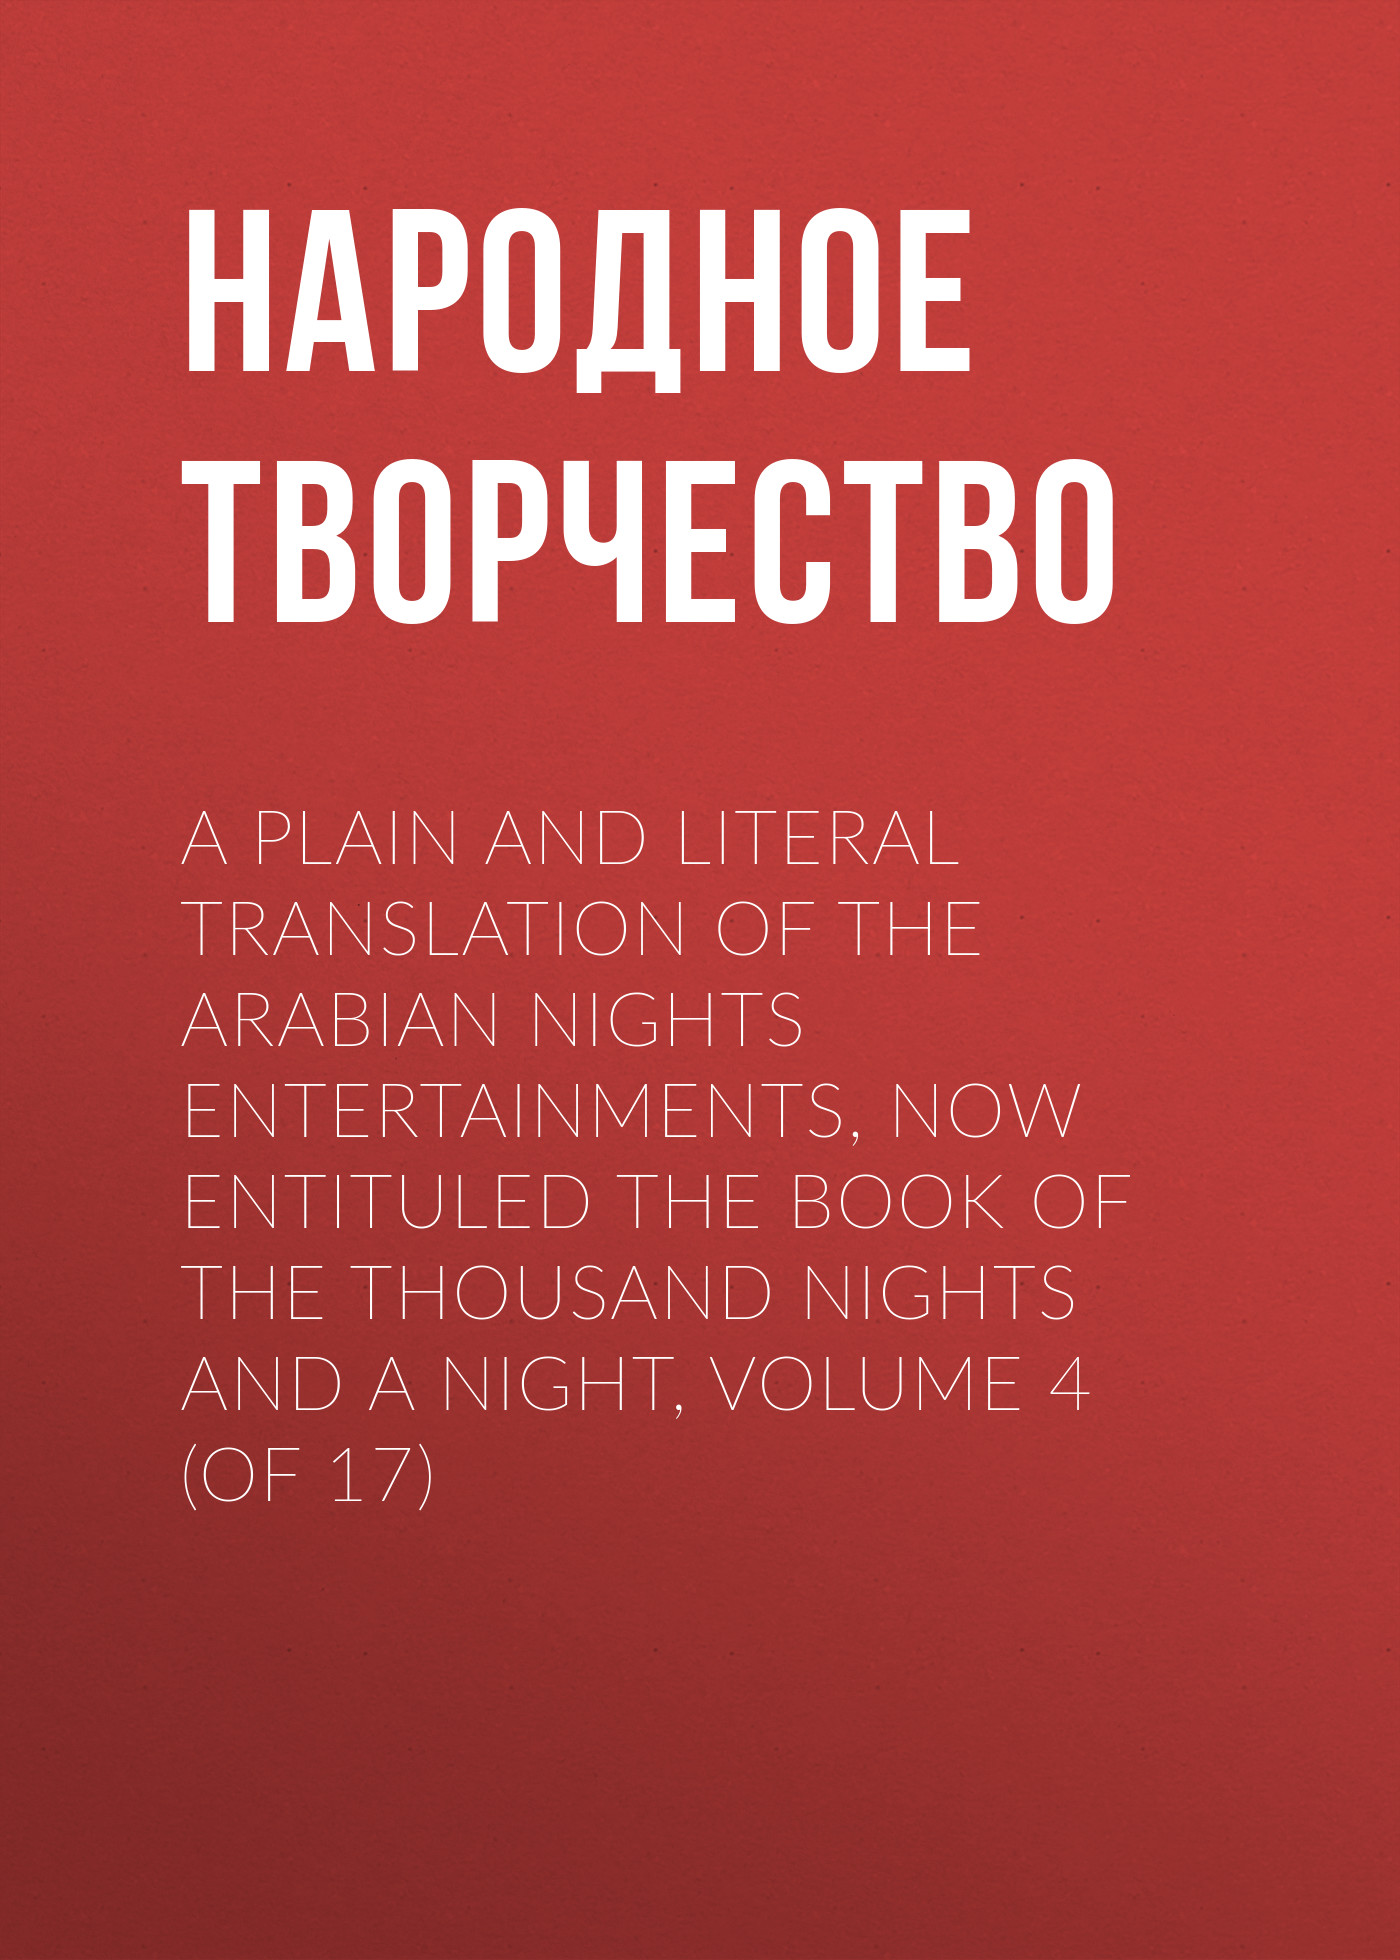 Народное творчество A plain and literal translation of the Arabian nights entertainments, now entituled The Book of the Thousand Nights and a Night, Volume 4 (of 17) the night angel trilogy book 1 the way of shadows